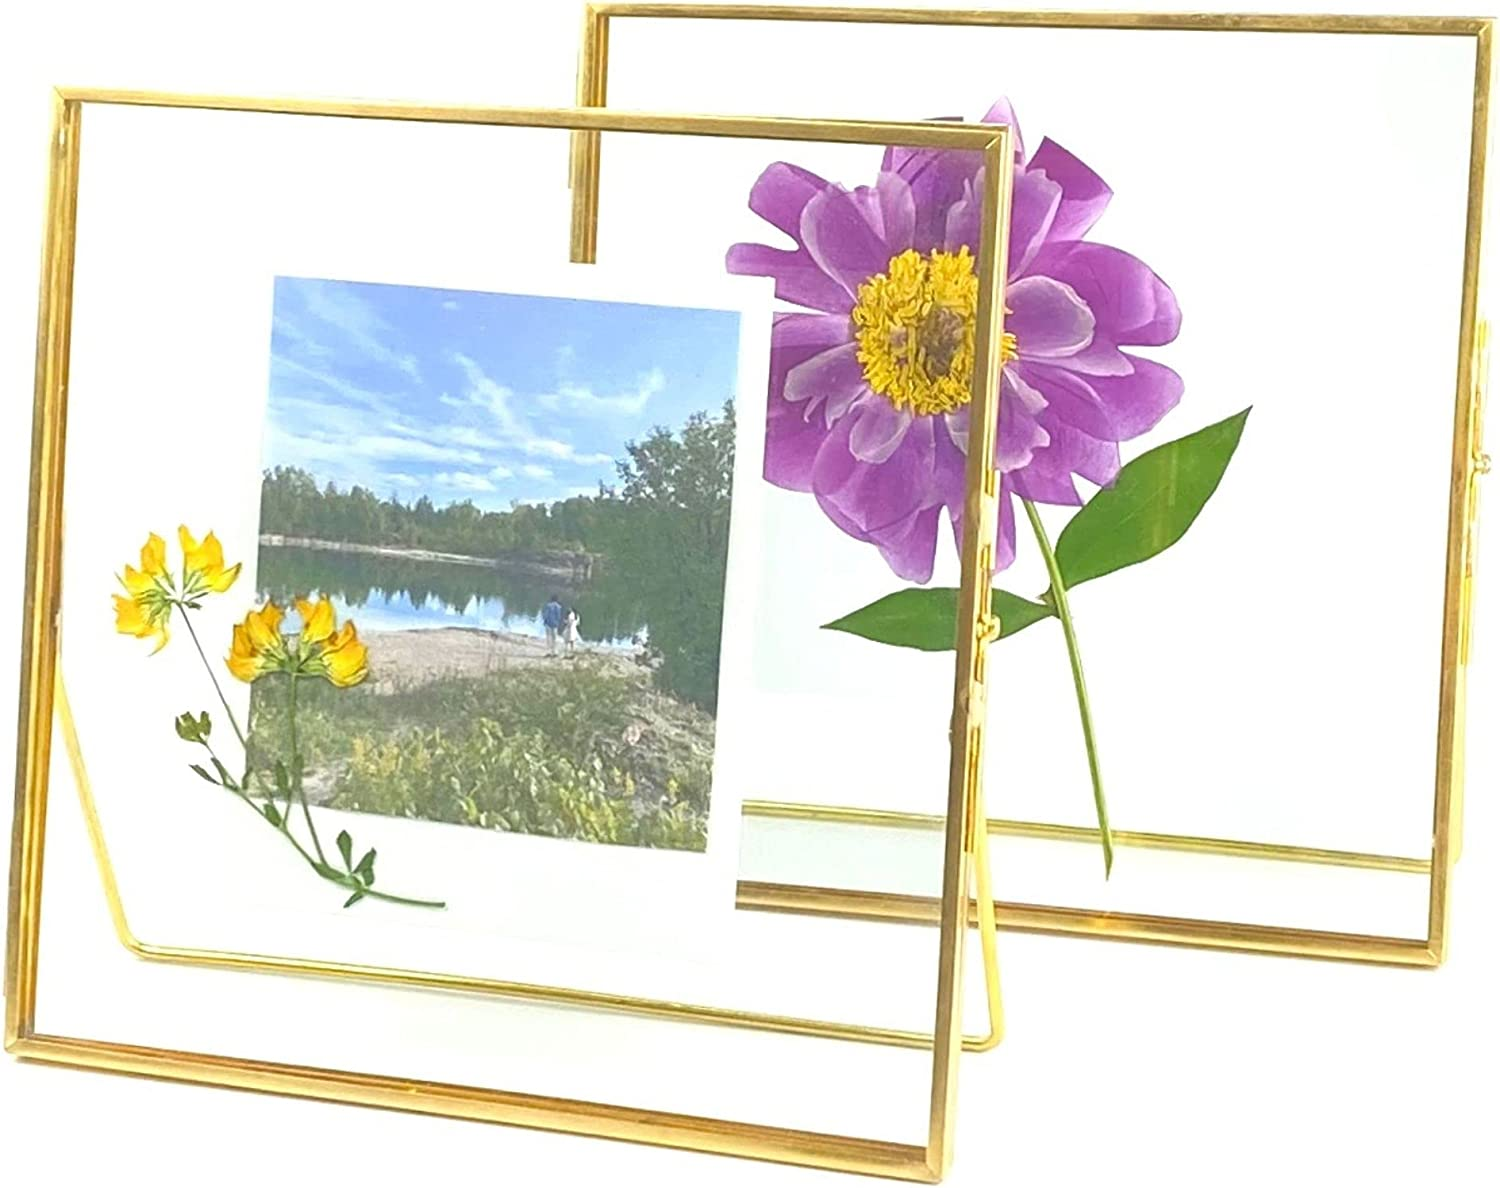 Glass Frame for Pressed Flowers, Leaf and Artwork - Gold 6x6 Standing Square Metal Picture Frames, Tabletop Clear Double Glass Floating Frame, Home Decor Photo Display, Set of 2 Flower Press Frames